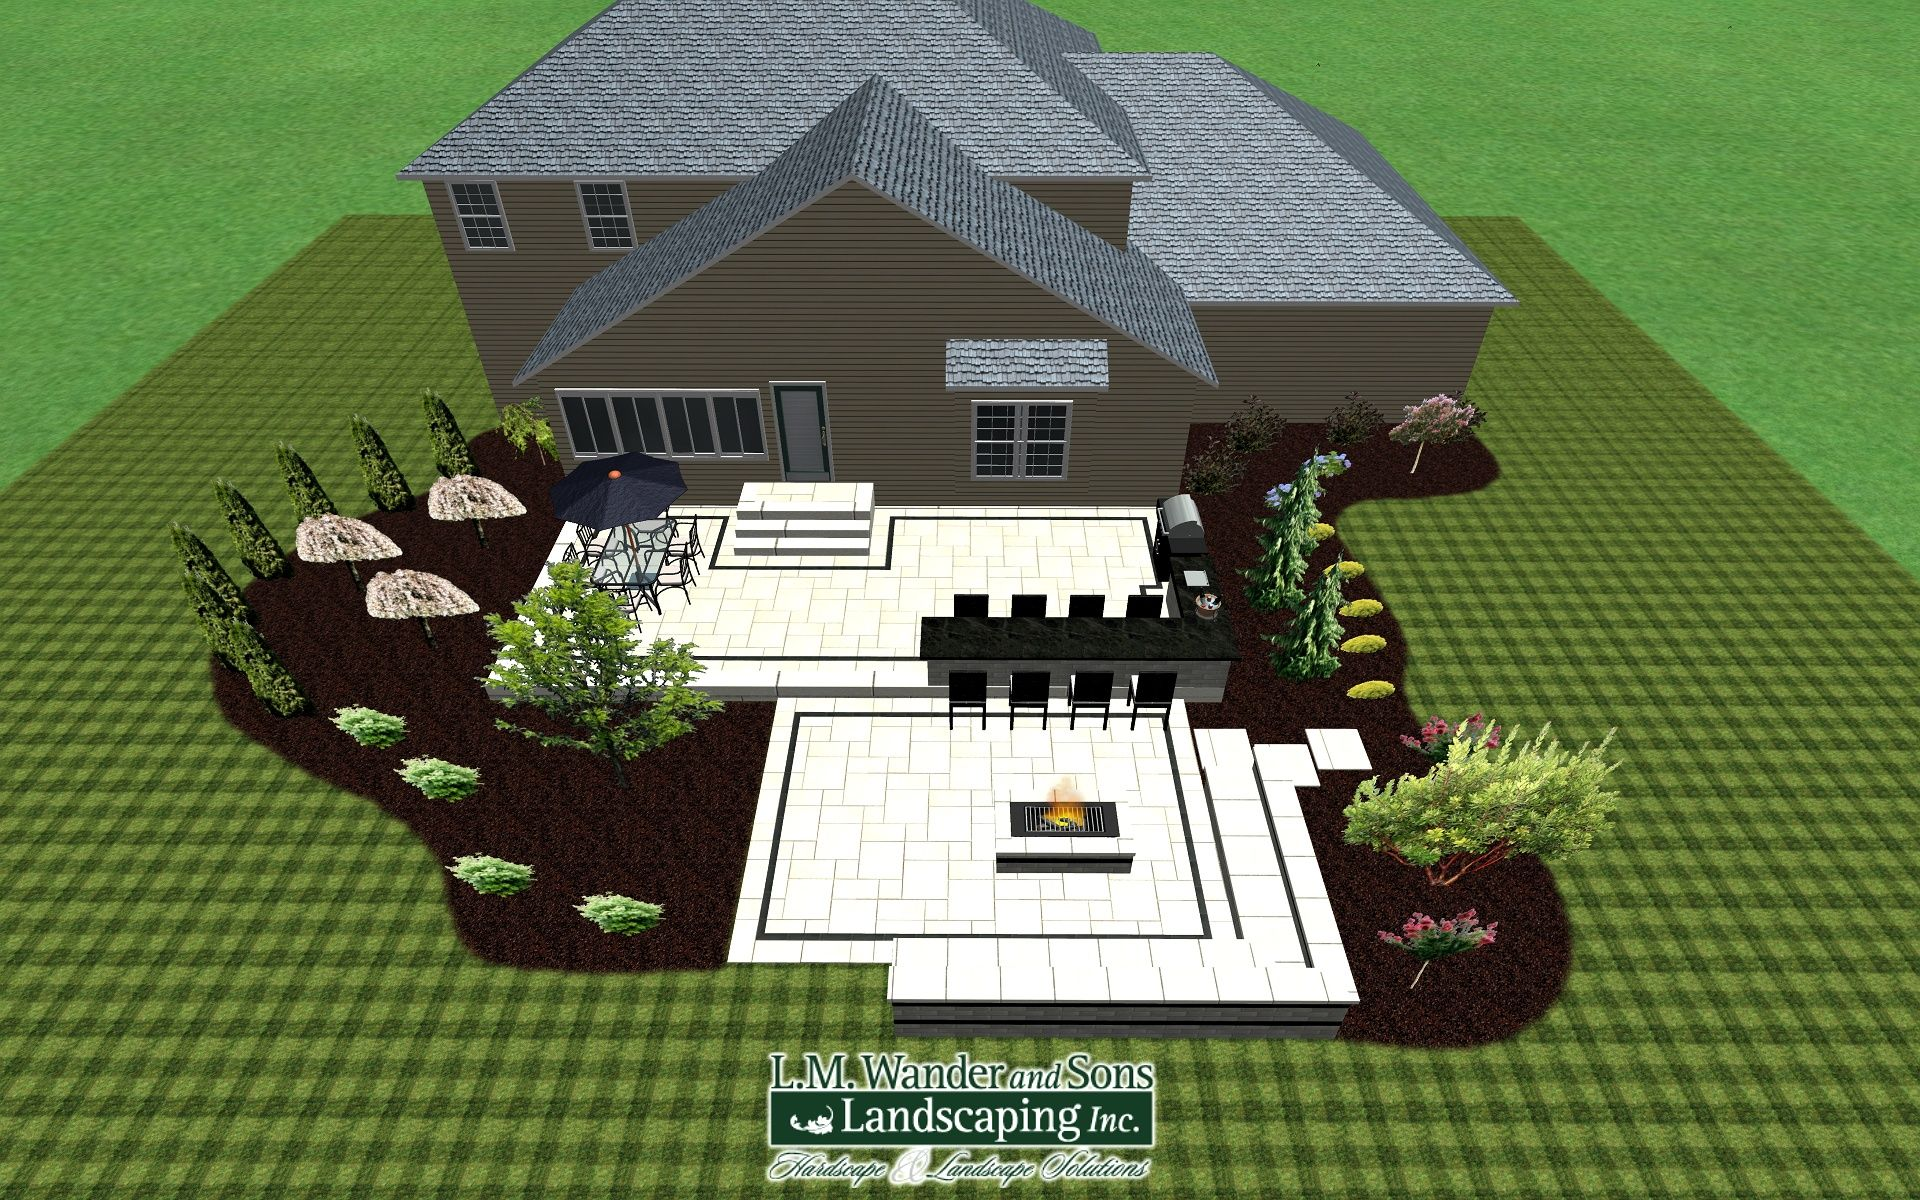 3D Patio Design. Modern Patio With Outdoor Kitchen, 15ft Long Bar Area, And  Gas Fire Pit With Large Sitting Will. Realtime Landscape Architect.